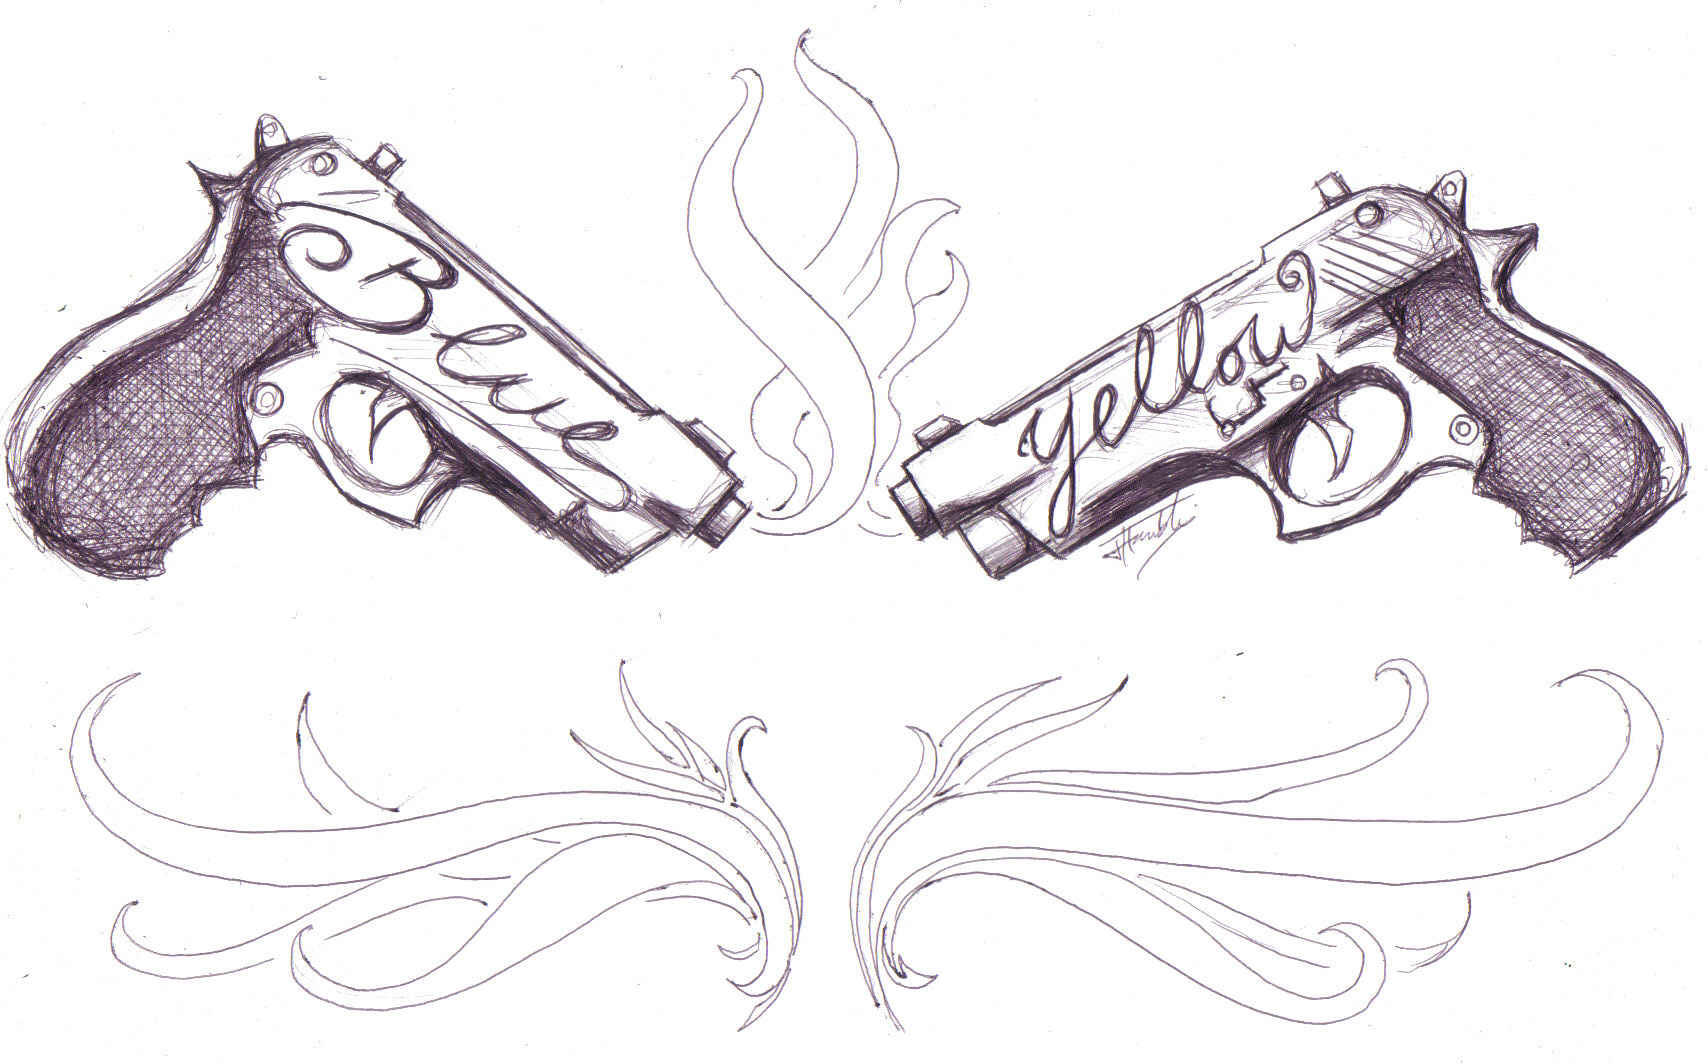 Guns by JoeD-rtman